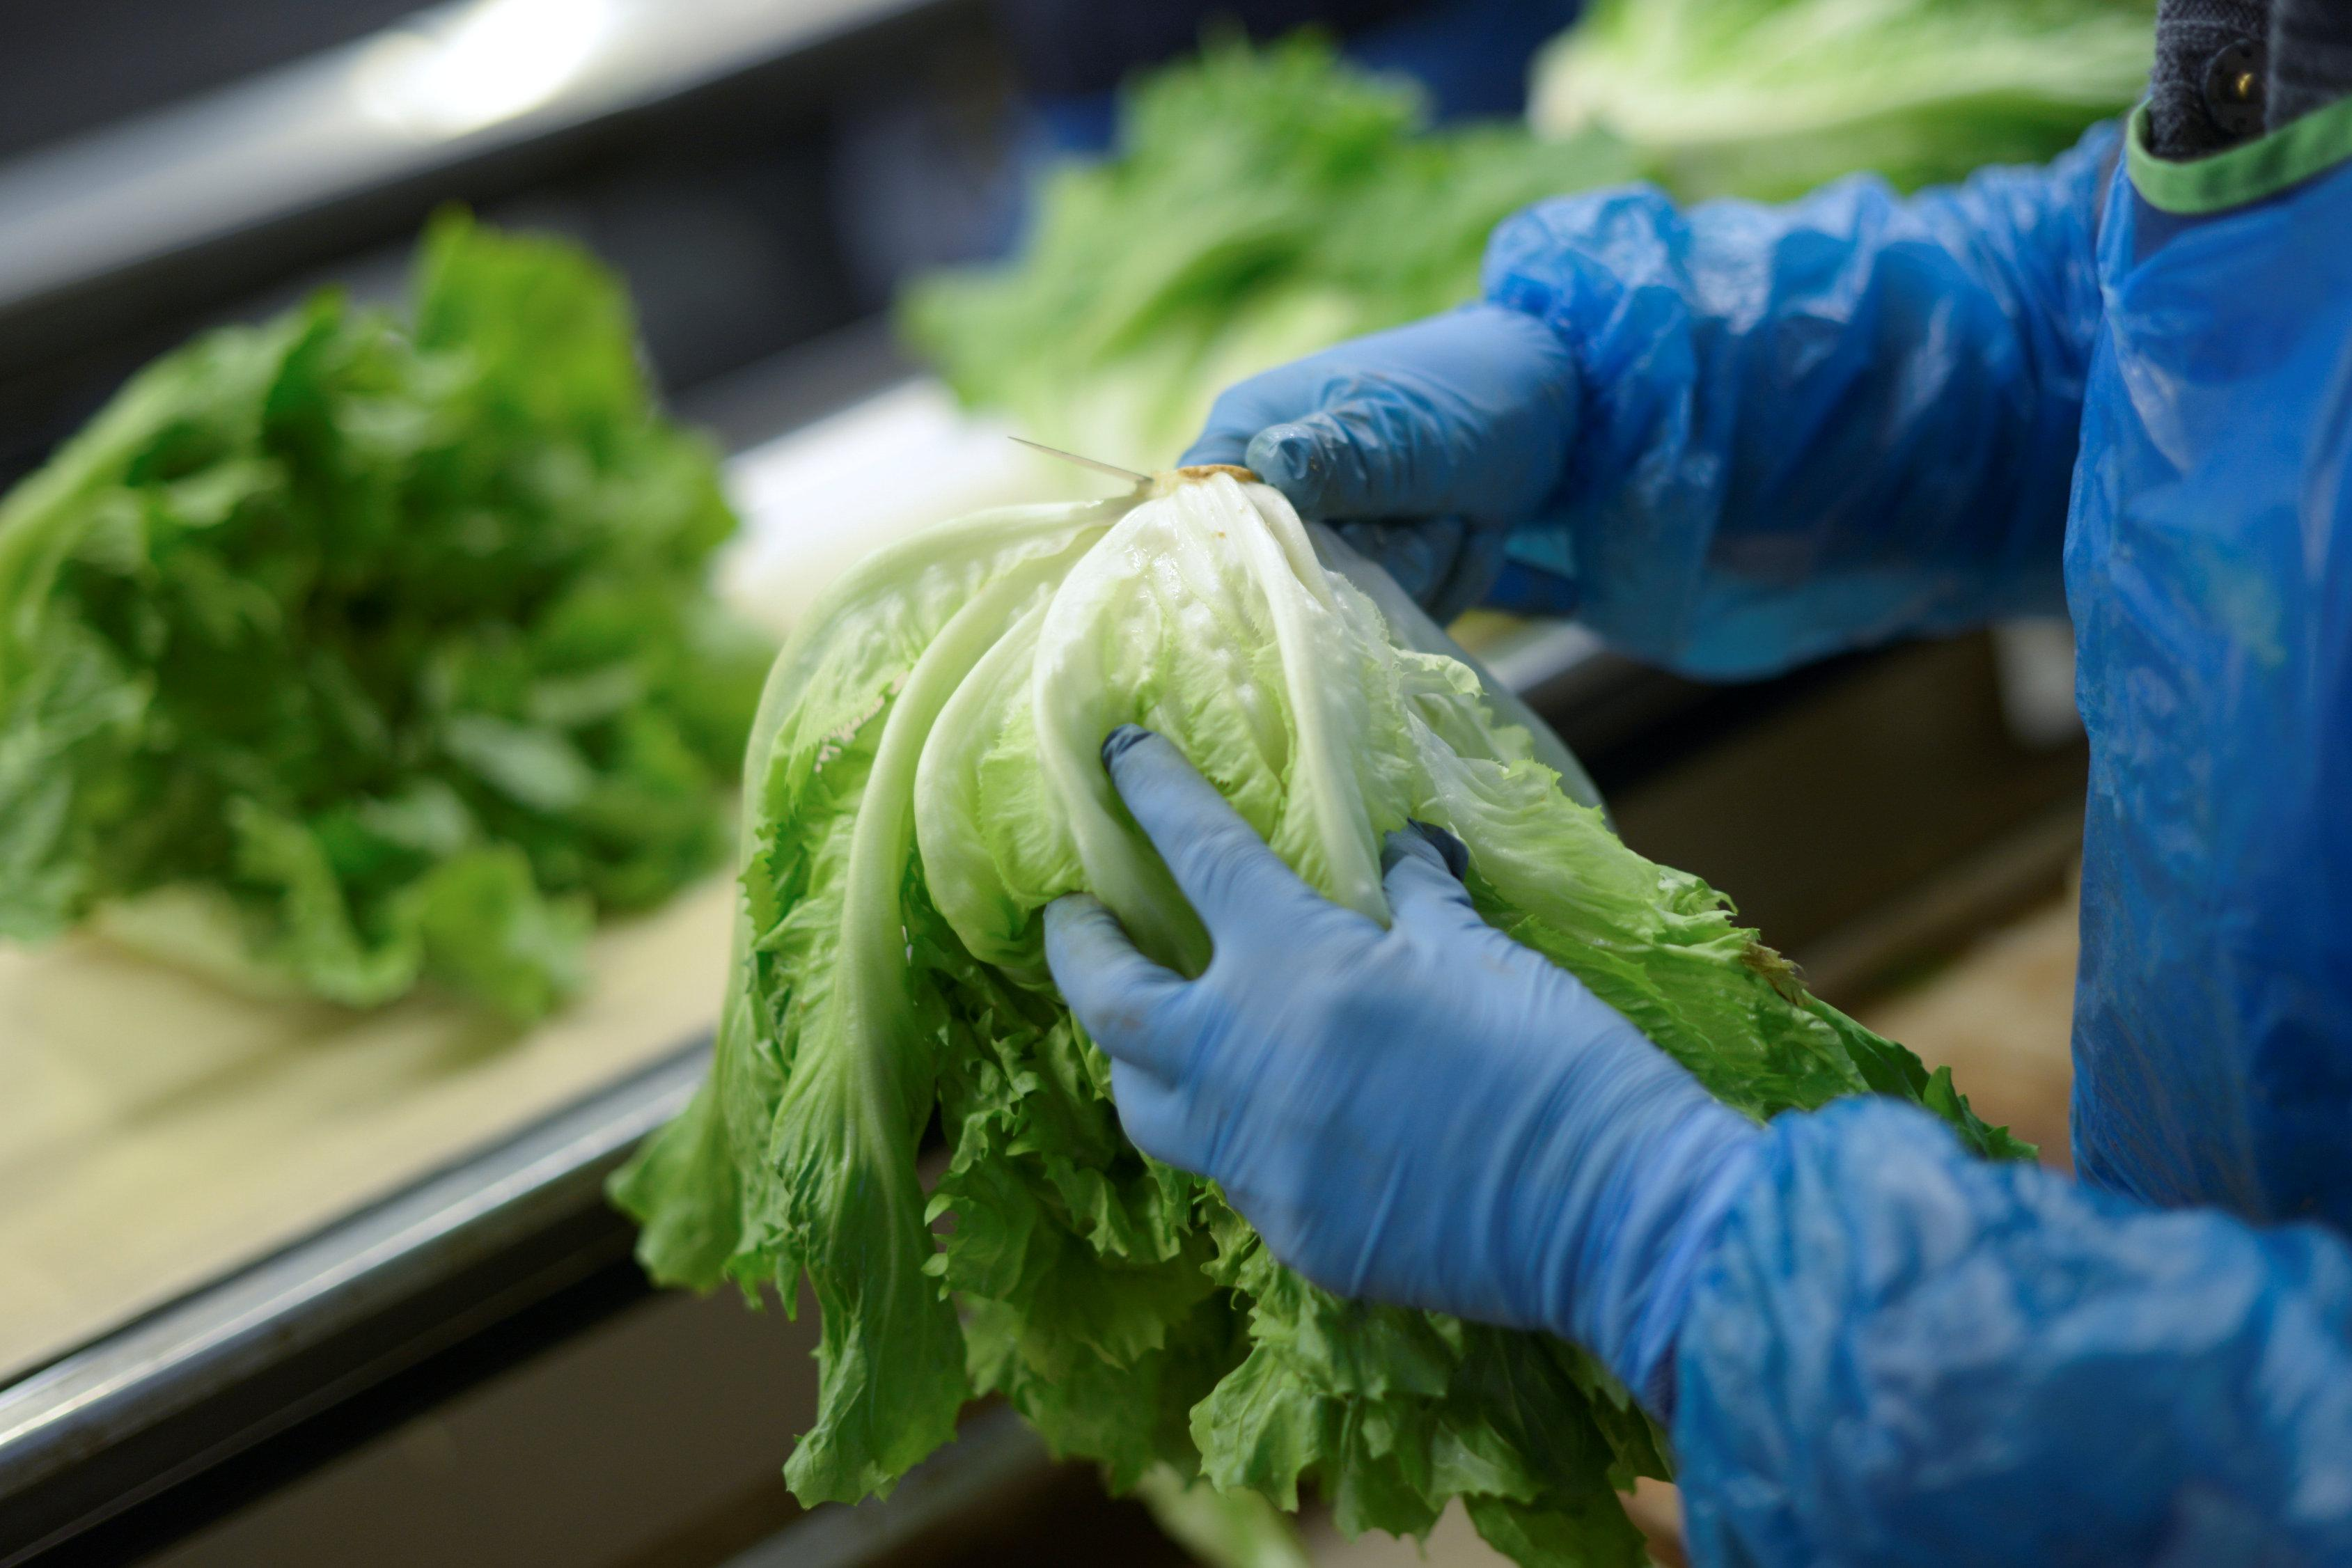 Spanish lettuce shortage likely to continue into March, say farmers